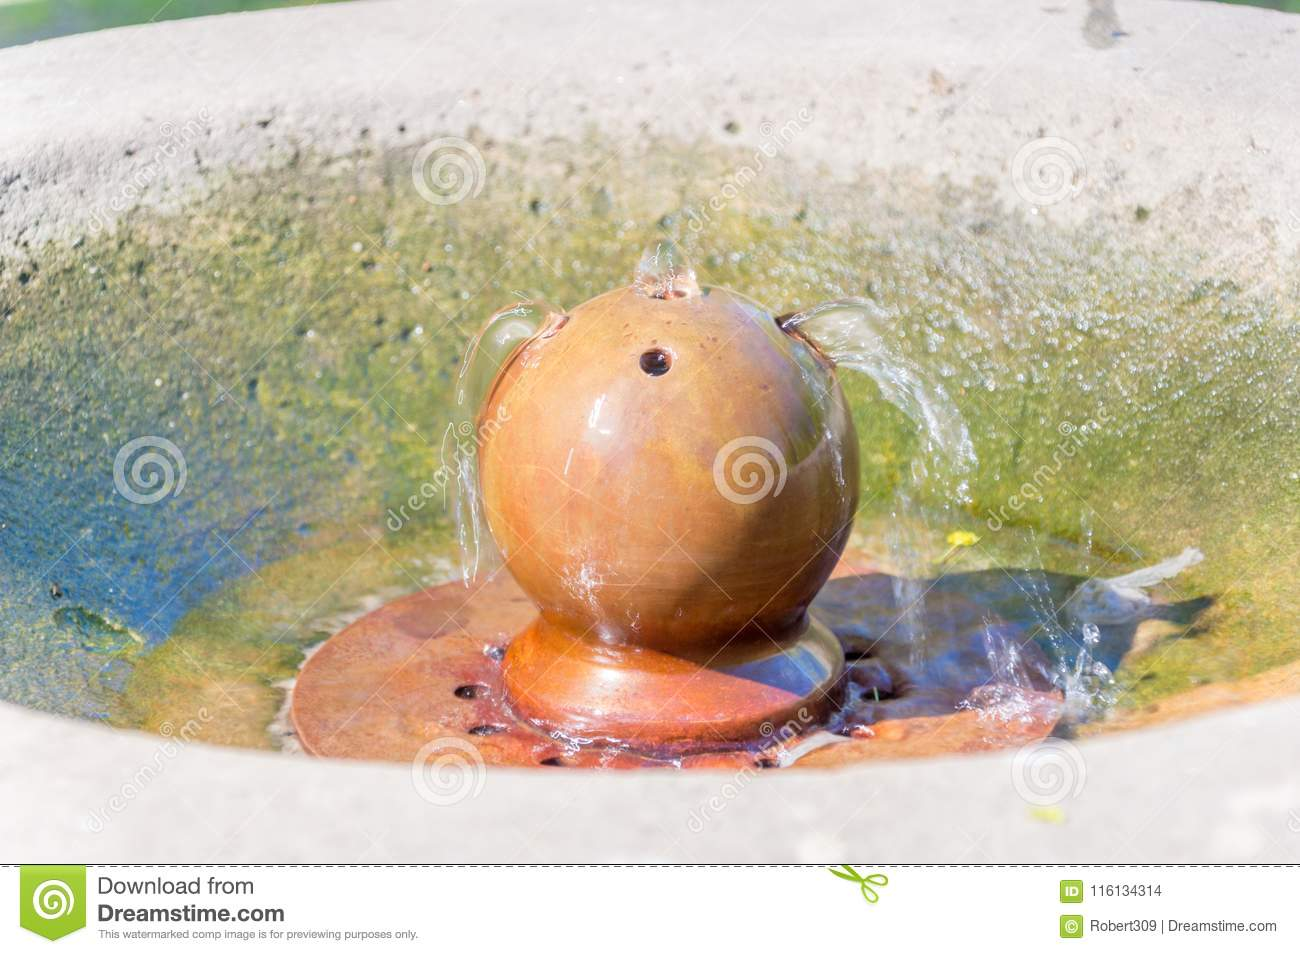 d0f647a0eb View Inside Drinking Water Fountain. Stock Photo - Image of capital ...